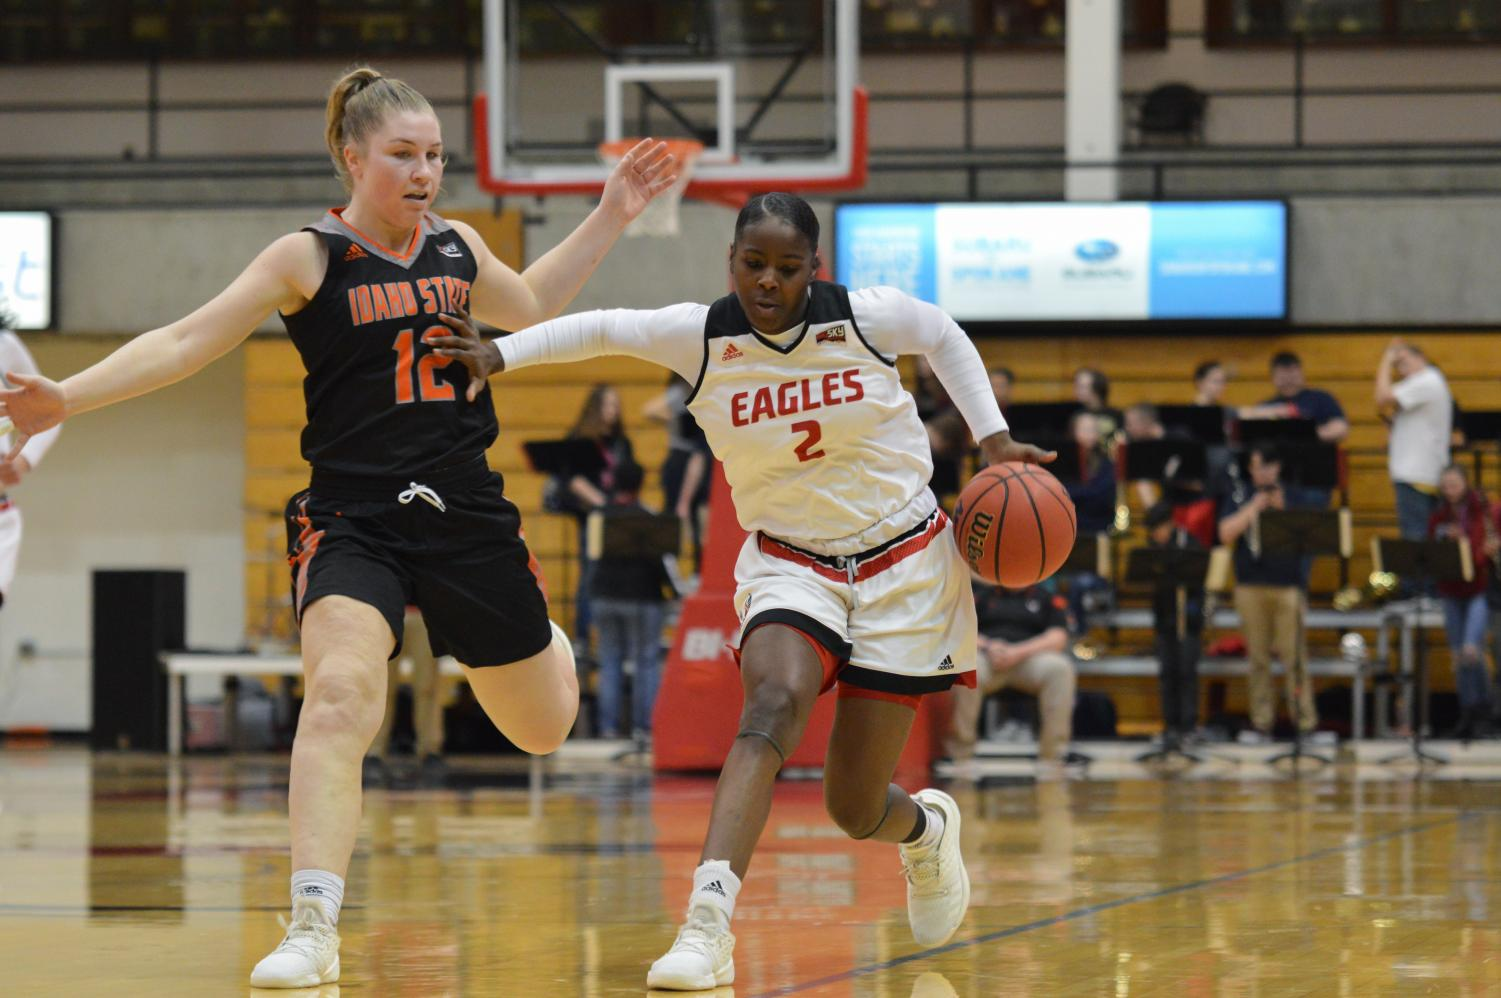 Junior forward Uriah Howard pushes off on an Idaho State defender in EWU's 74-45 loss on Thursday. The loss guaranteed the Eagles the No. 6 seed in the upcoming Big Sky Conference Tournament.